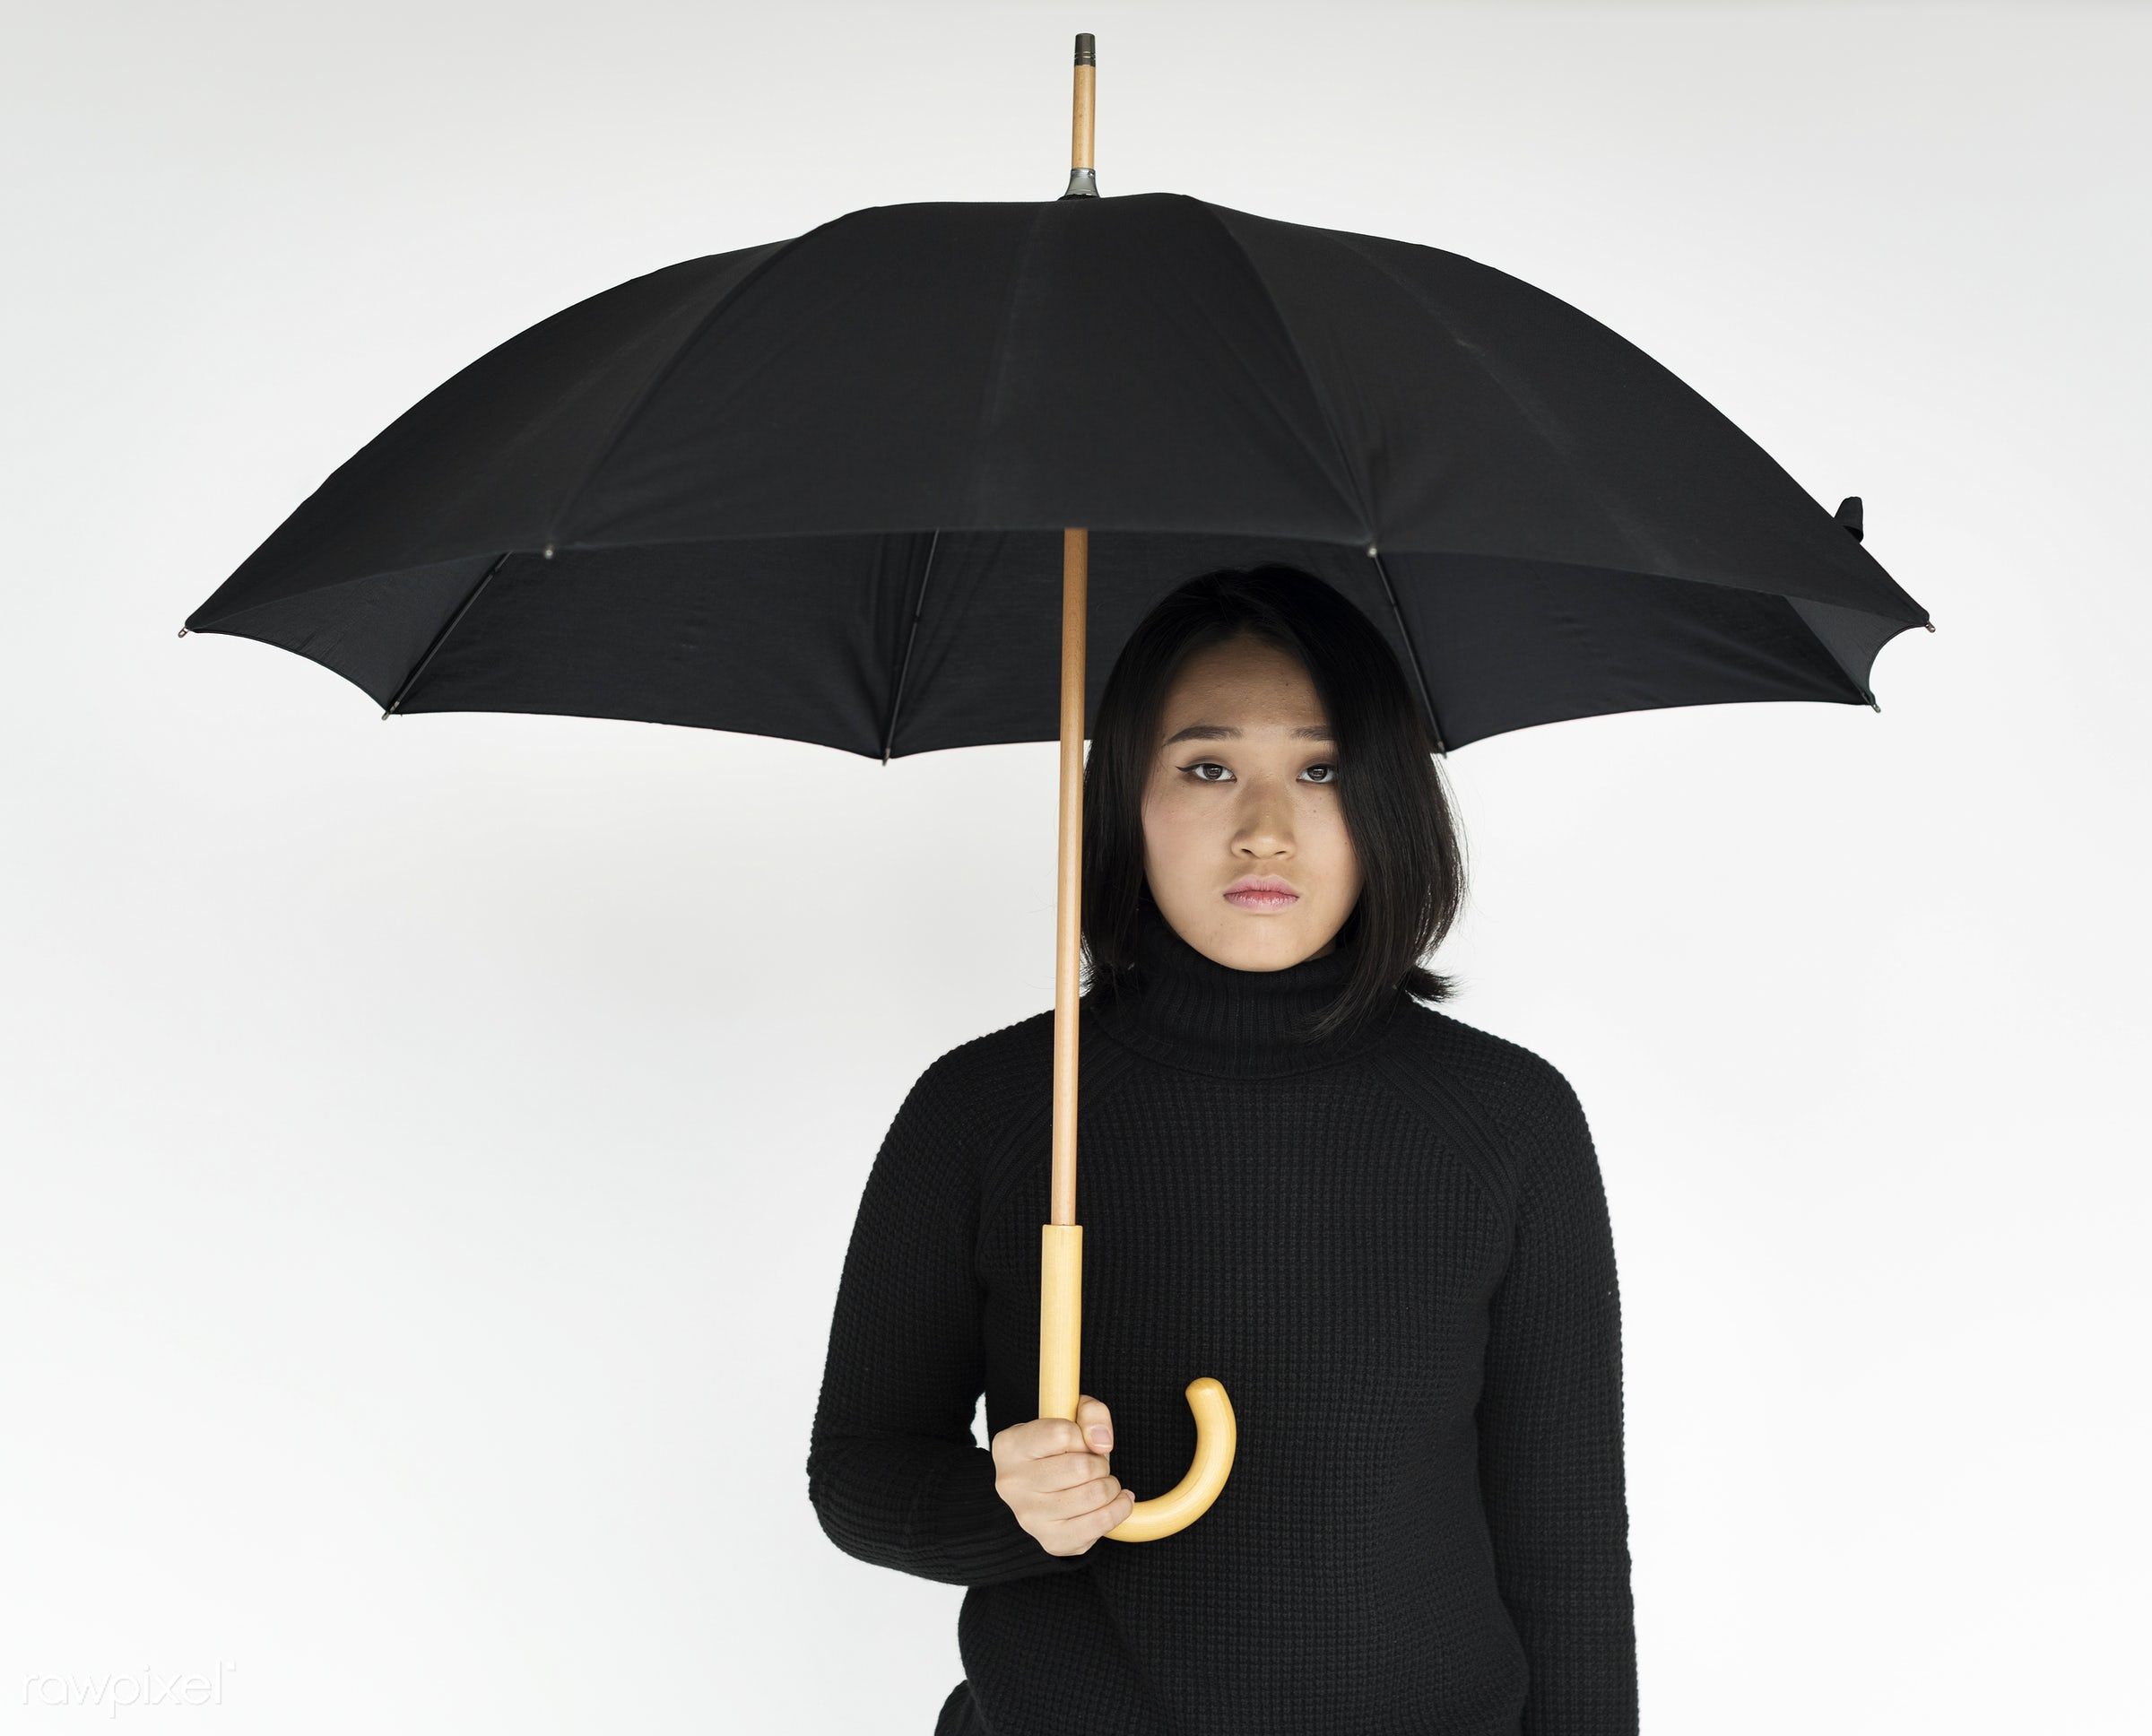 studio, expression, person, holding, sad, people, asian, woman, weather, serious, black, isolated, umbrella, white, portrait...